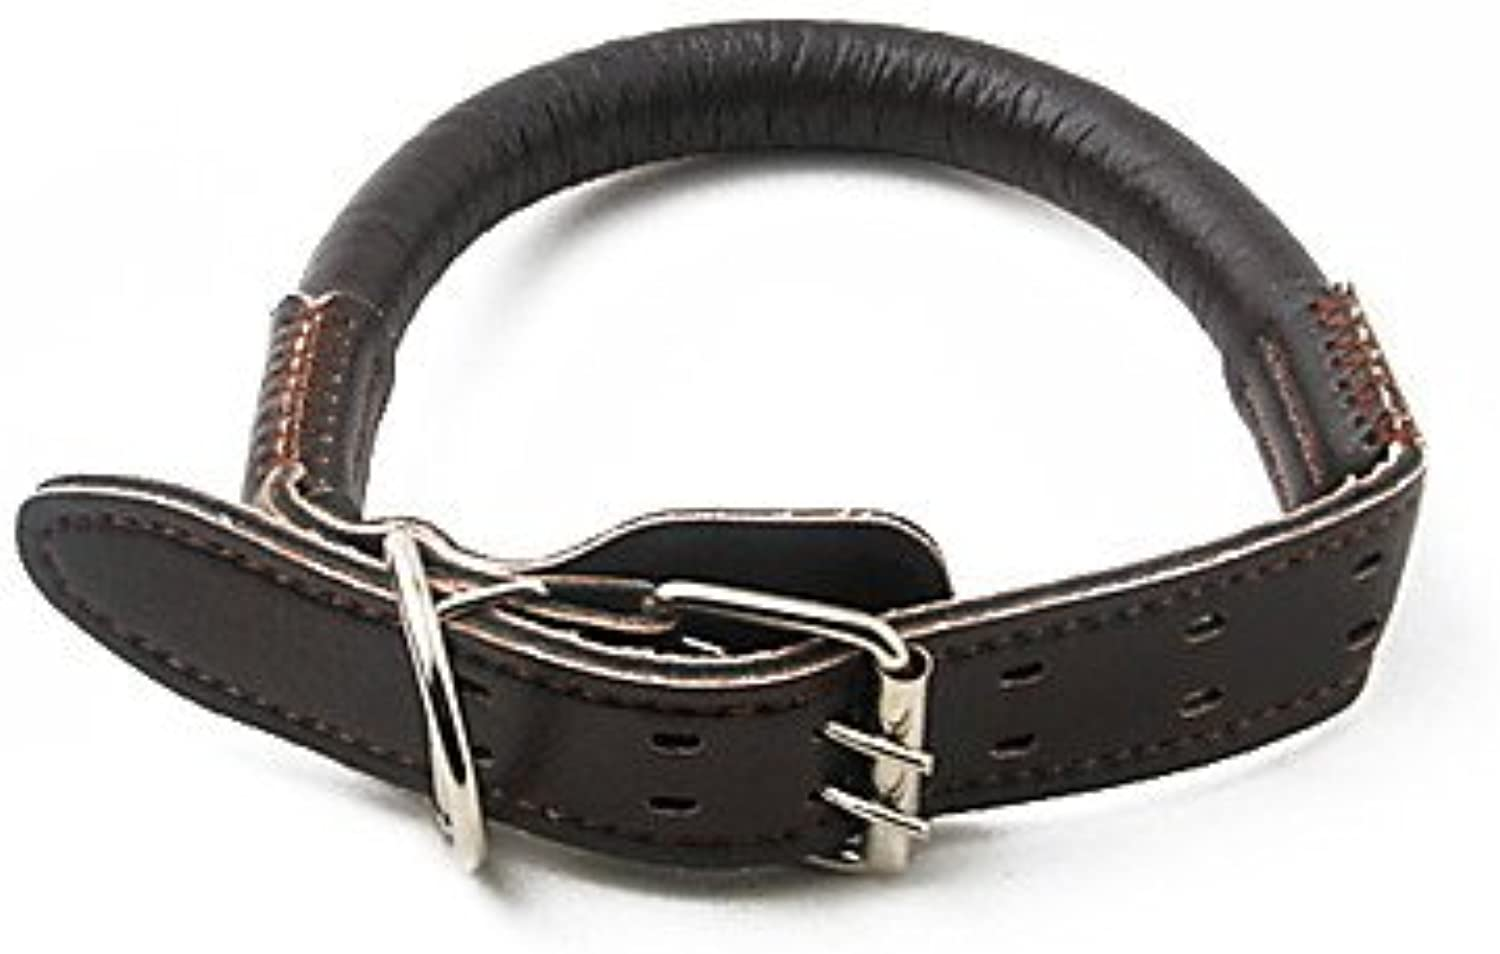 Quick shopping Highgrade Doublebuckle Brown Leather Leash for Dogs